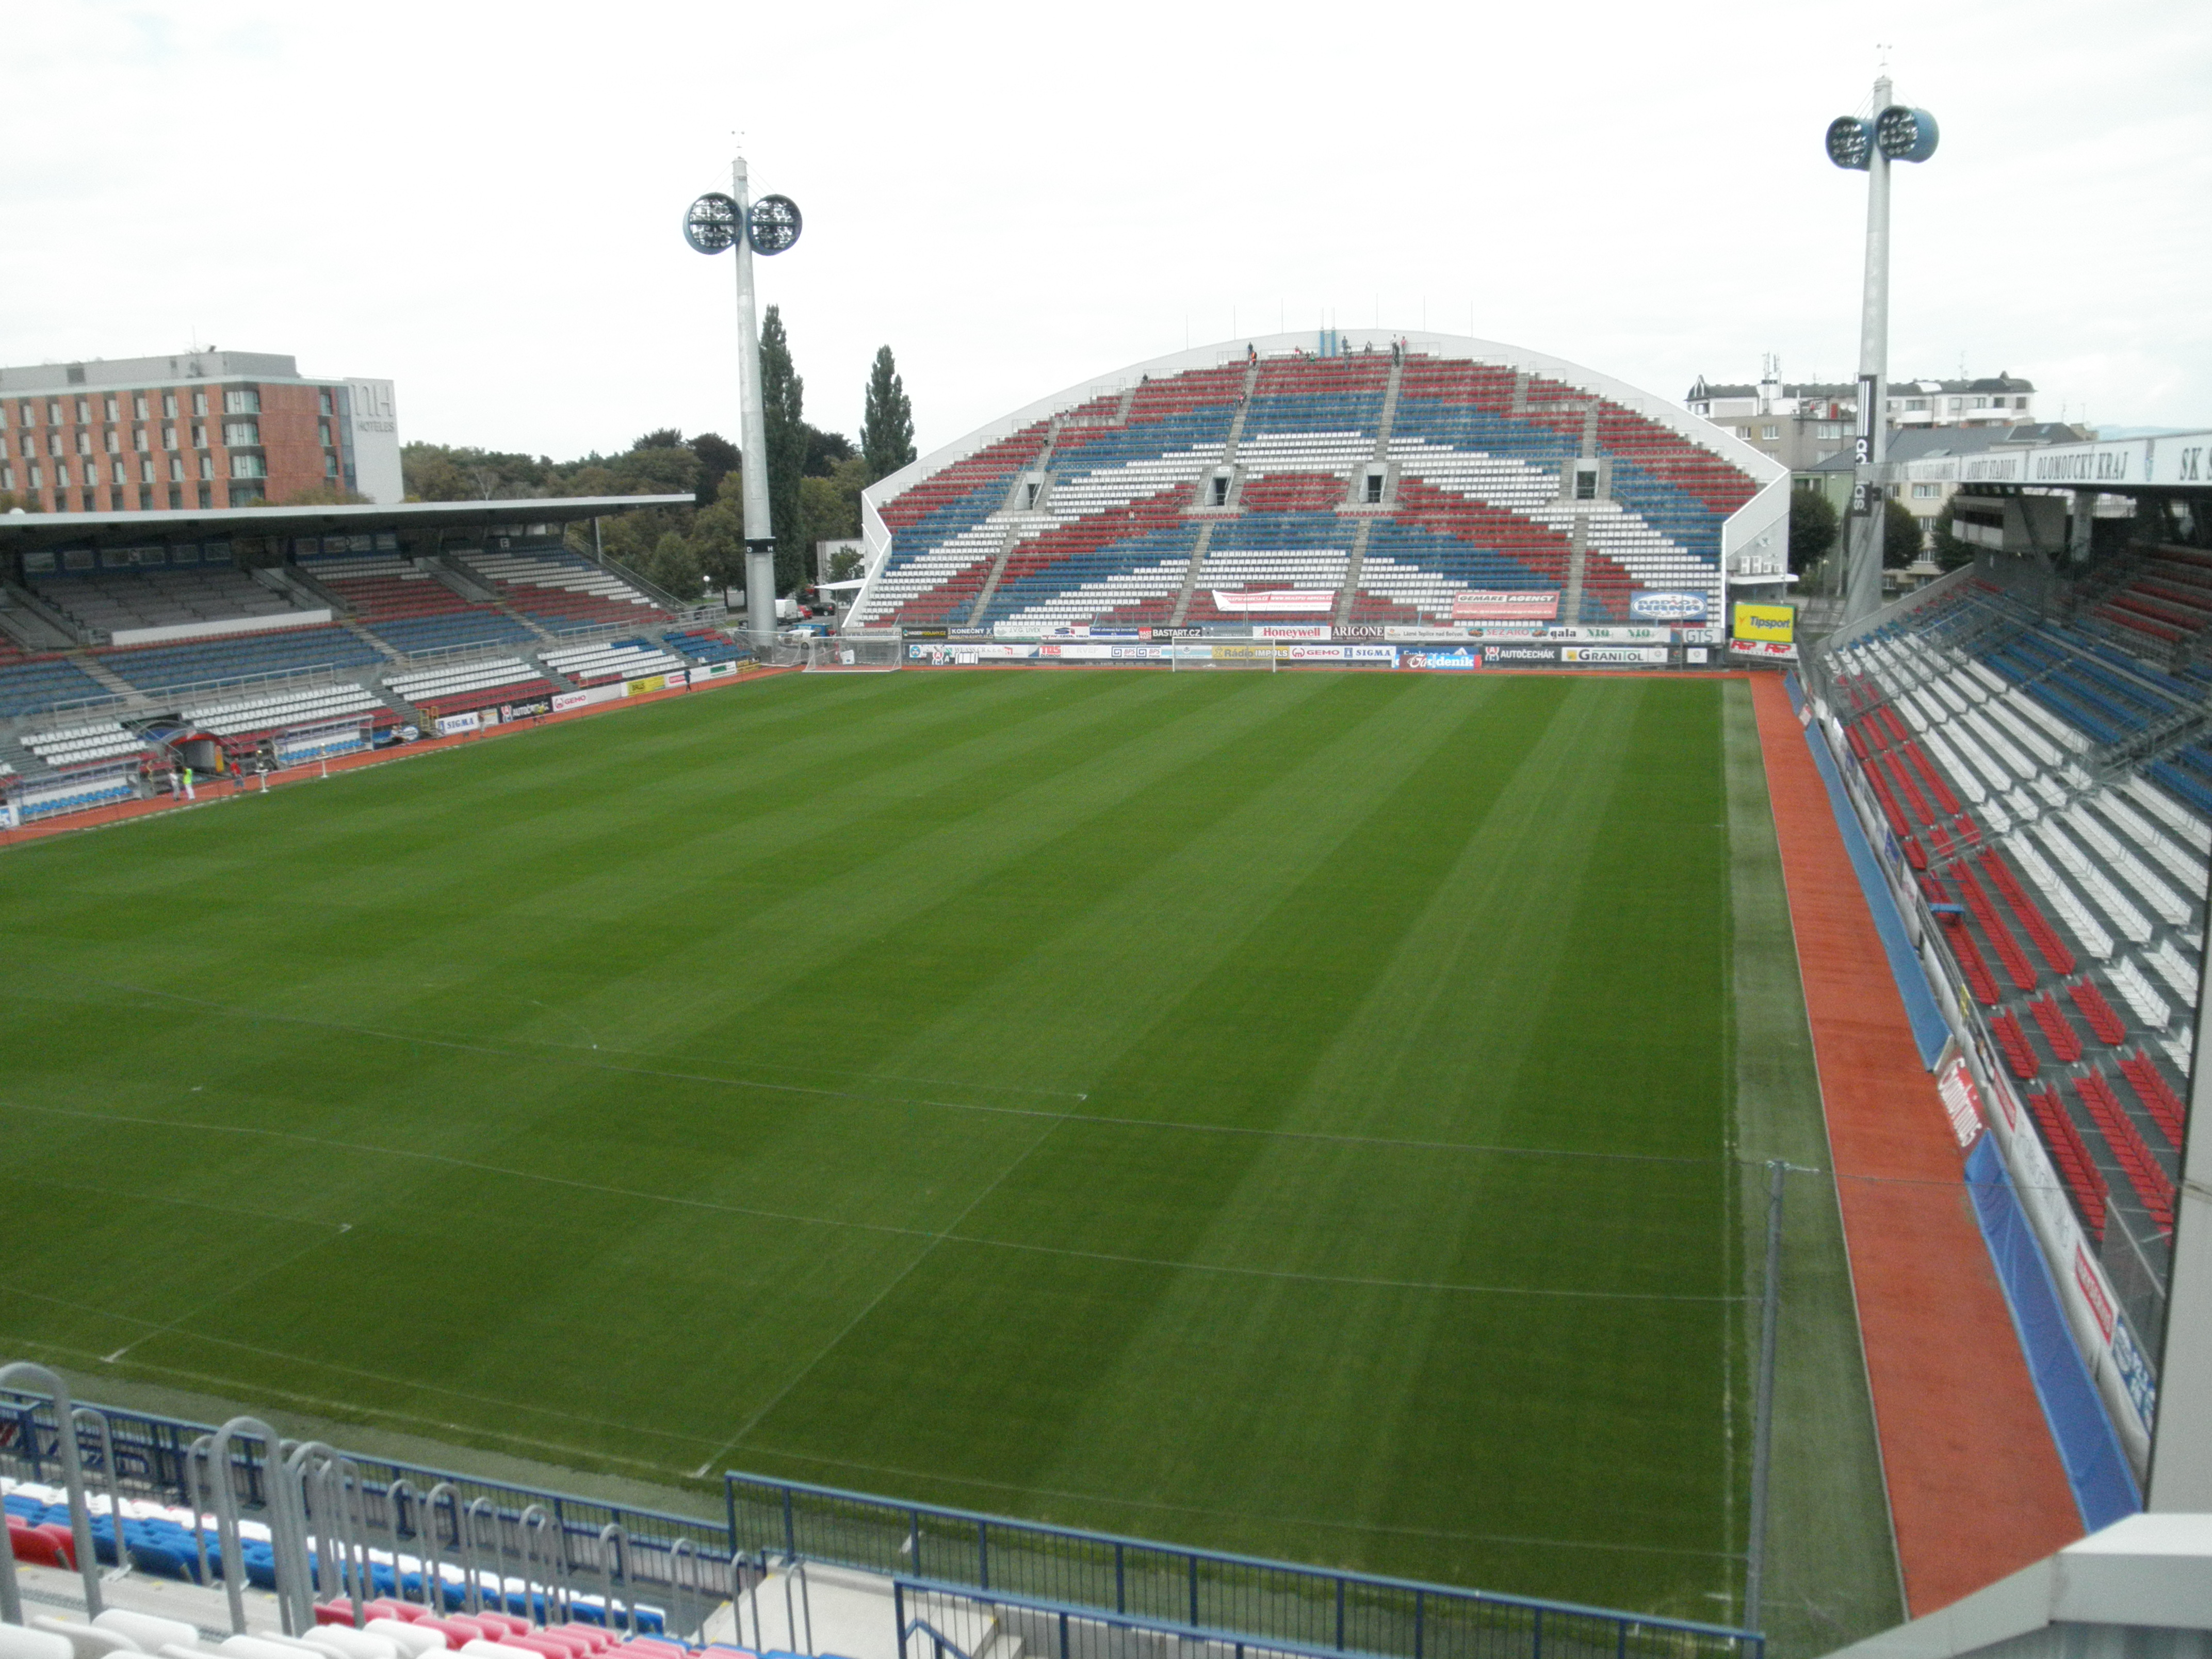 Andruv_stadion Planning a Football Trip to Olomouc